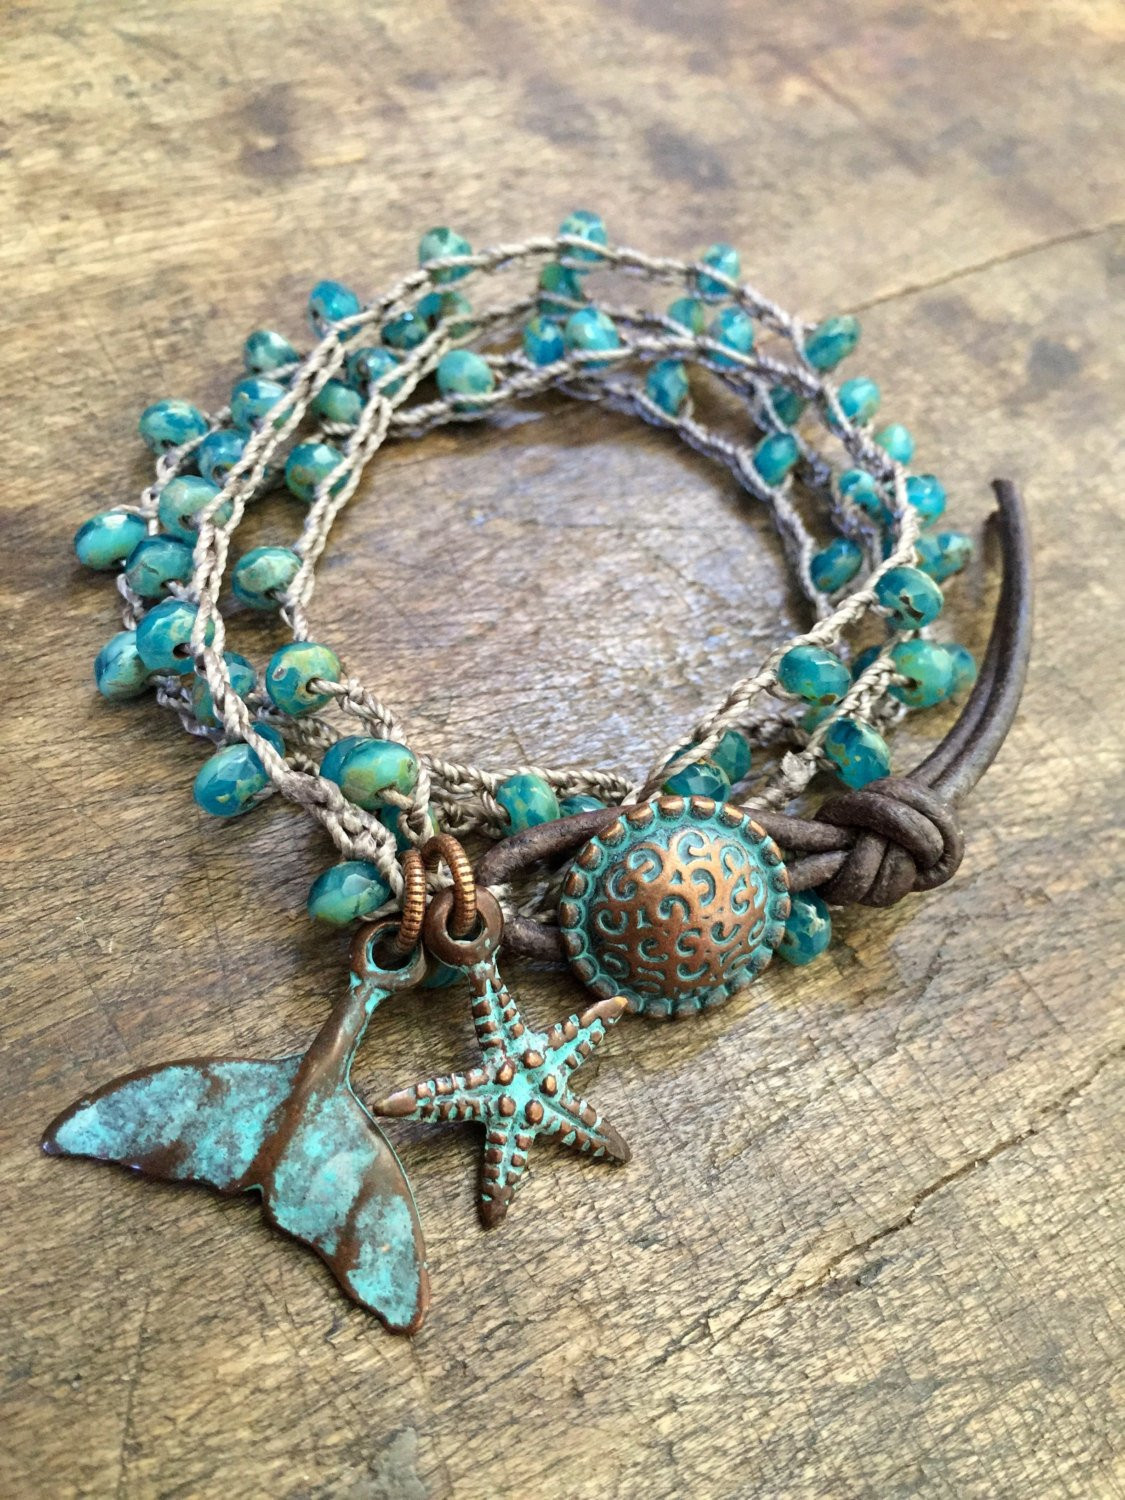 Turquoise Beaded Knotted Wrap Crochet Bracelet Rustic